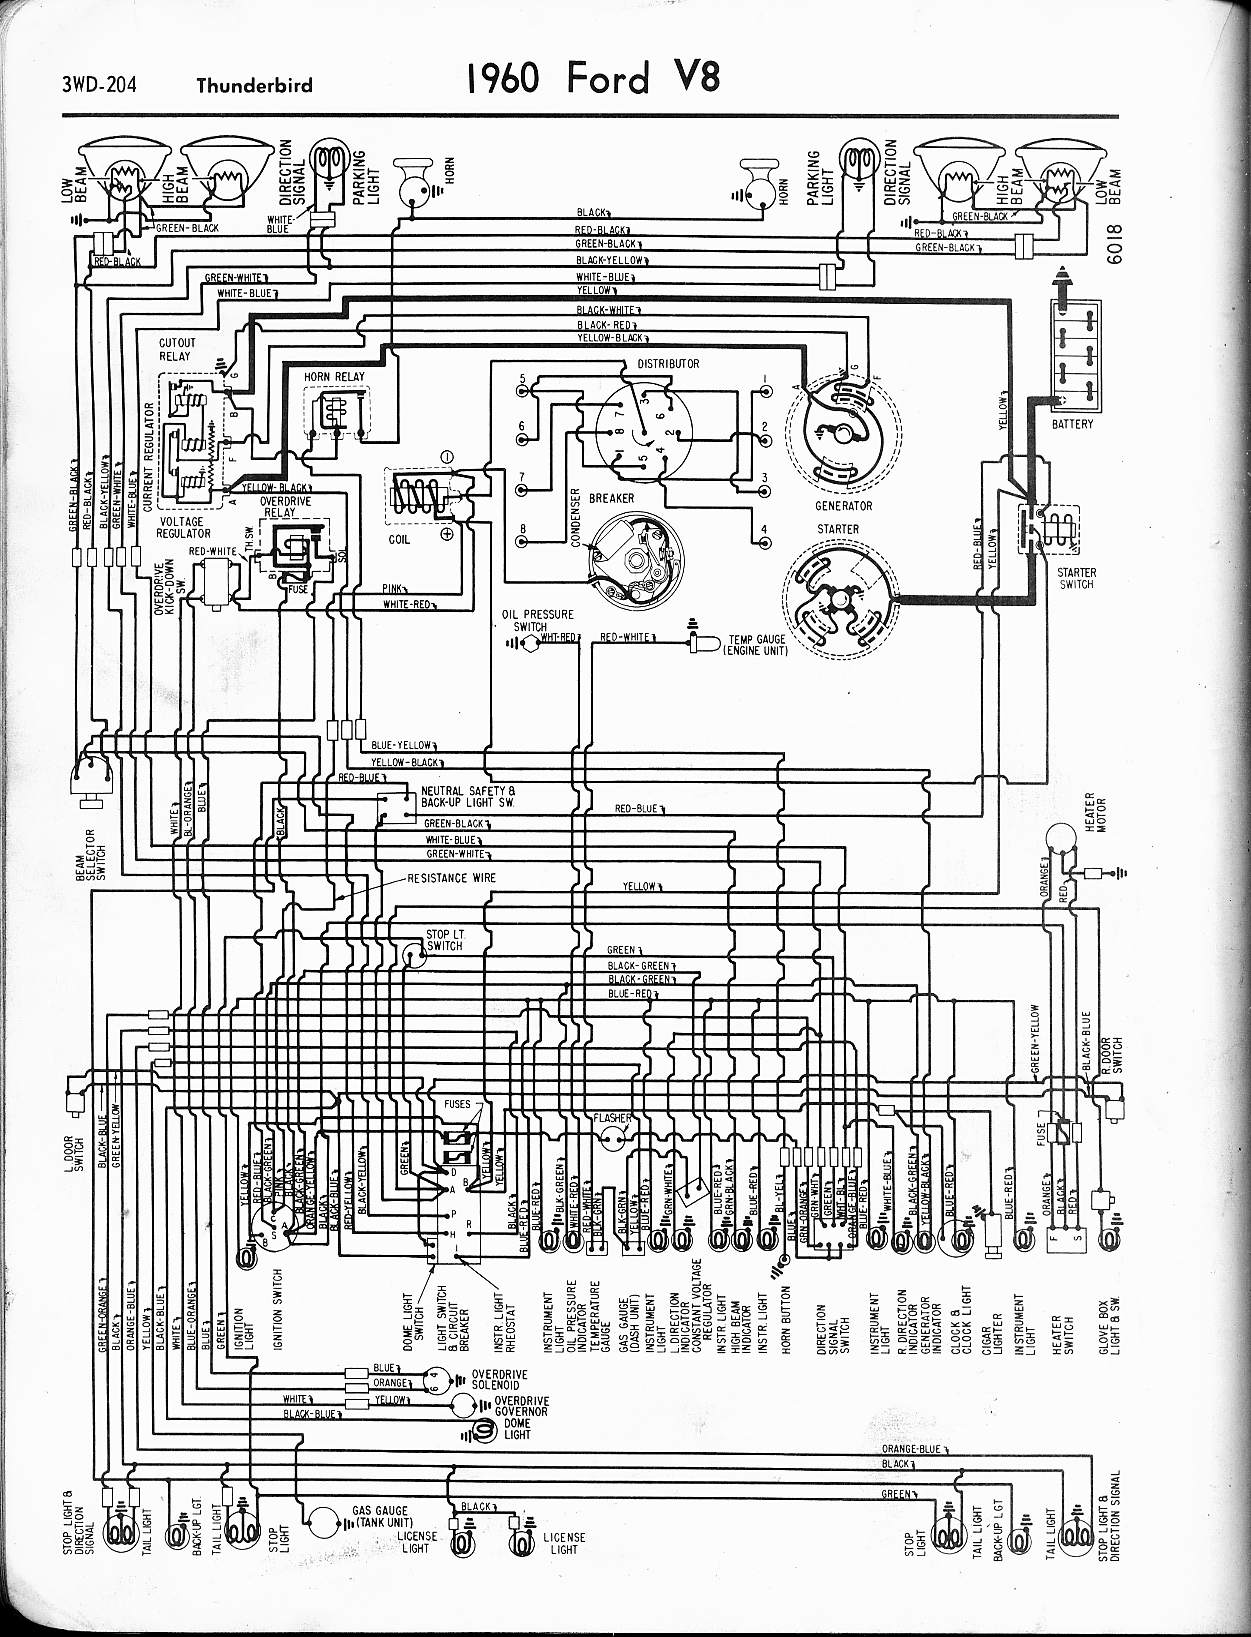 Super Images Of 1961 Lincoln Continental Wiring Diagram Wiring Library Wiring Digital Resources Funapmognl